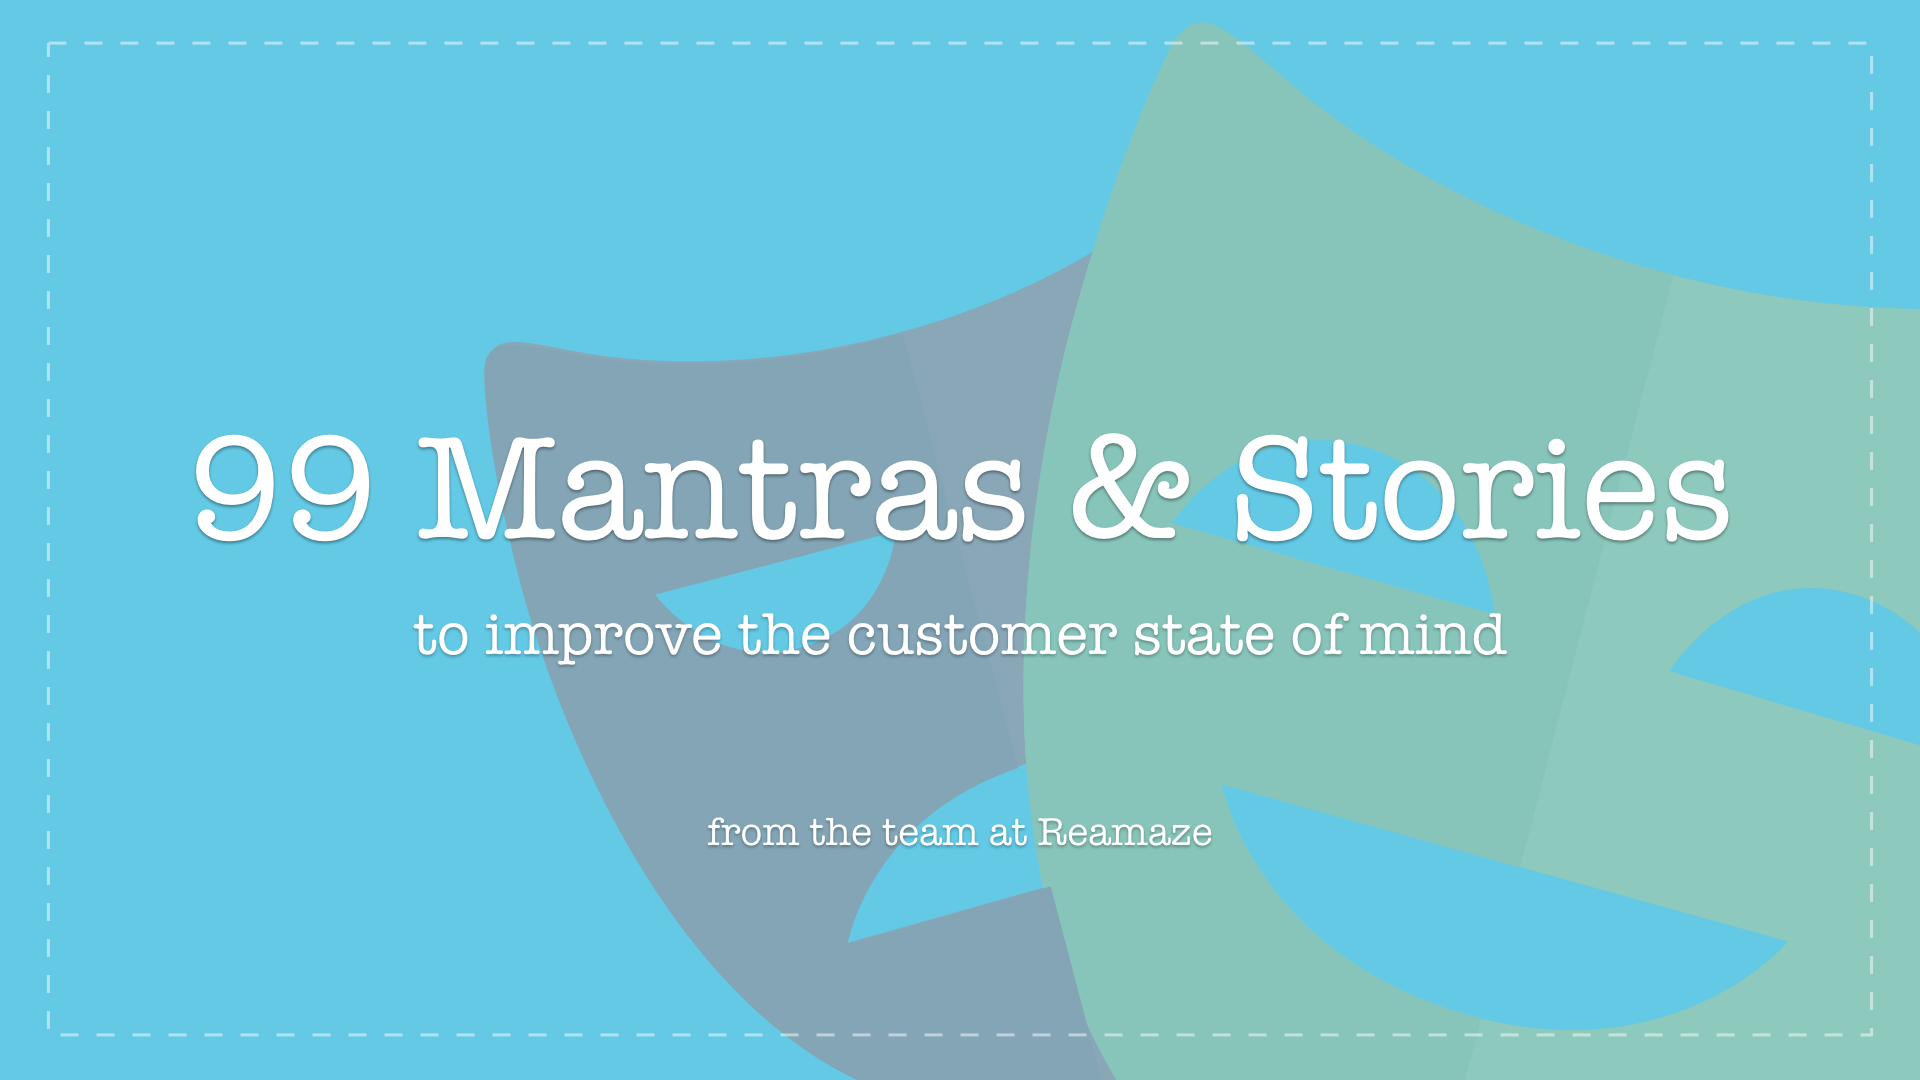 99 Mantras and Stories to Improve the Customer State of Mind